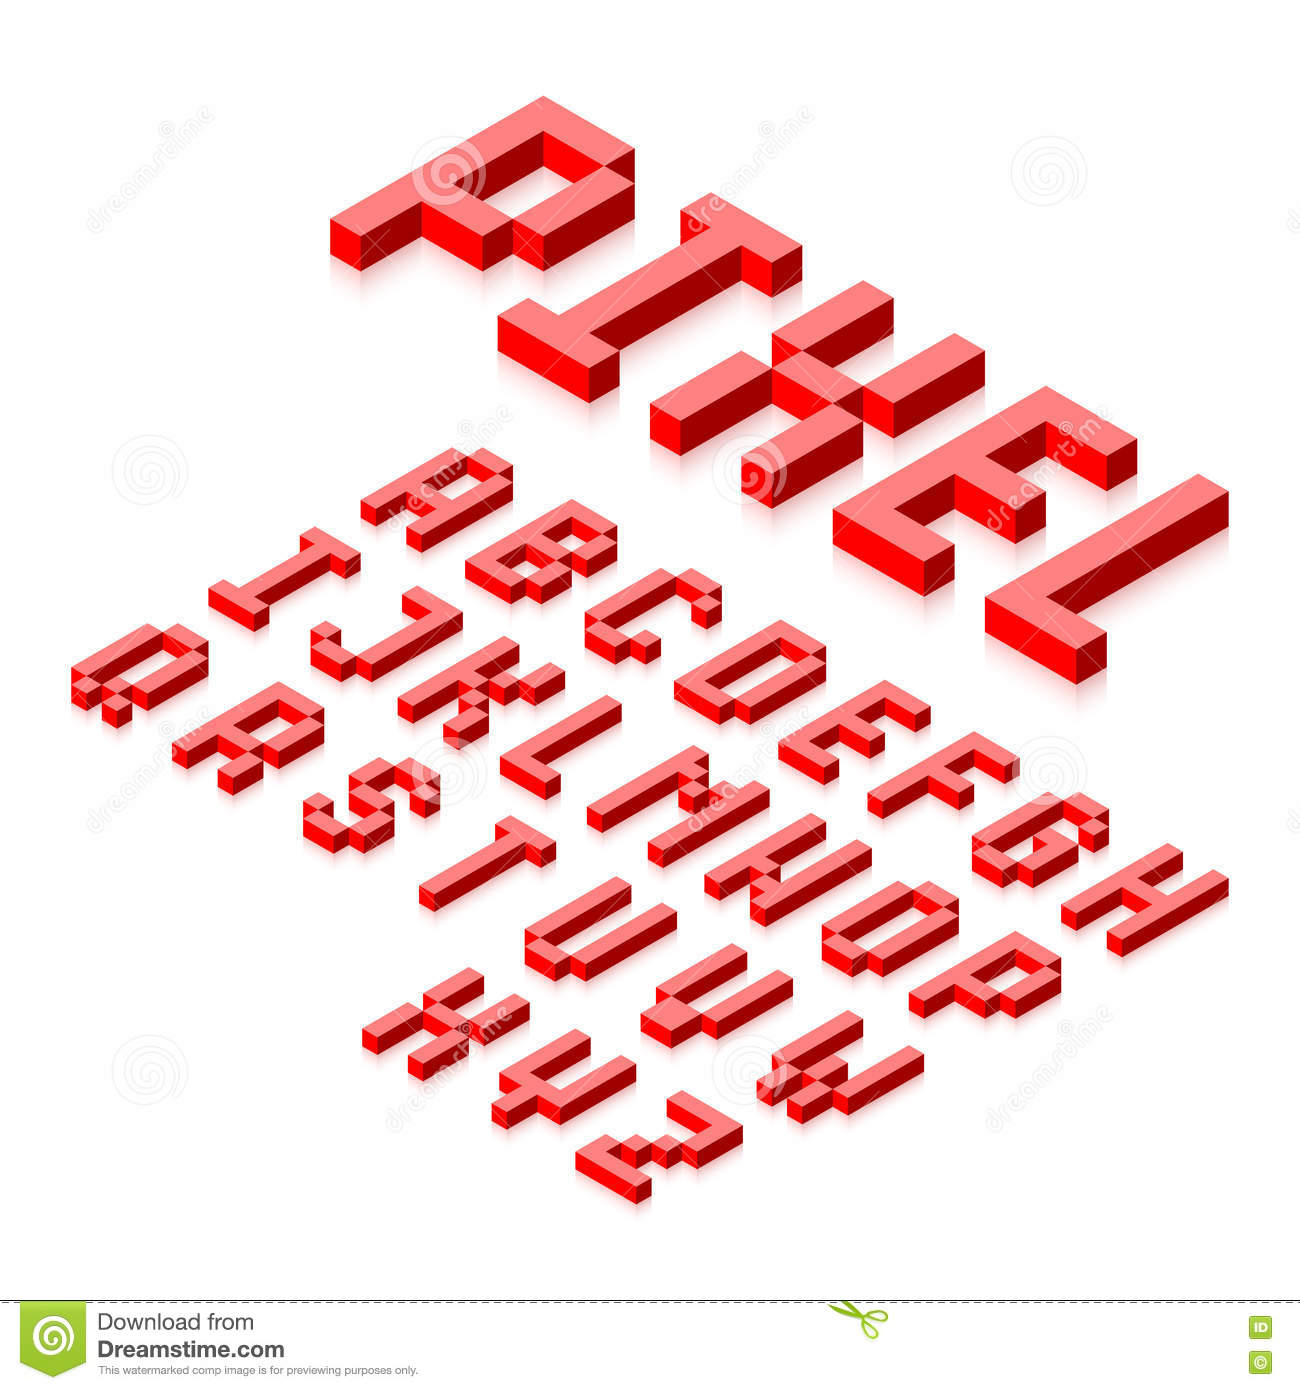 Isometric 3d Pixel Font Stock Vector. Illustration Of Sign